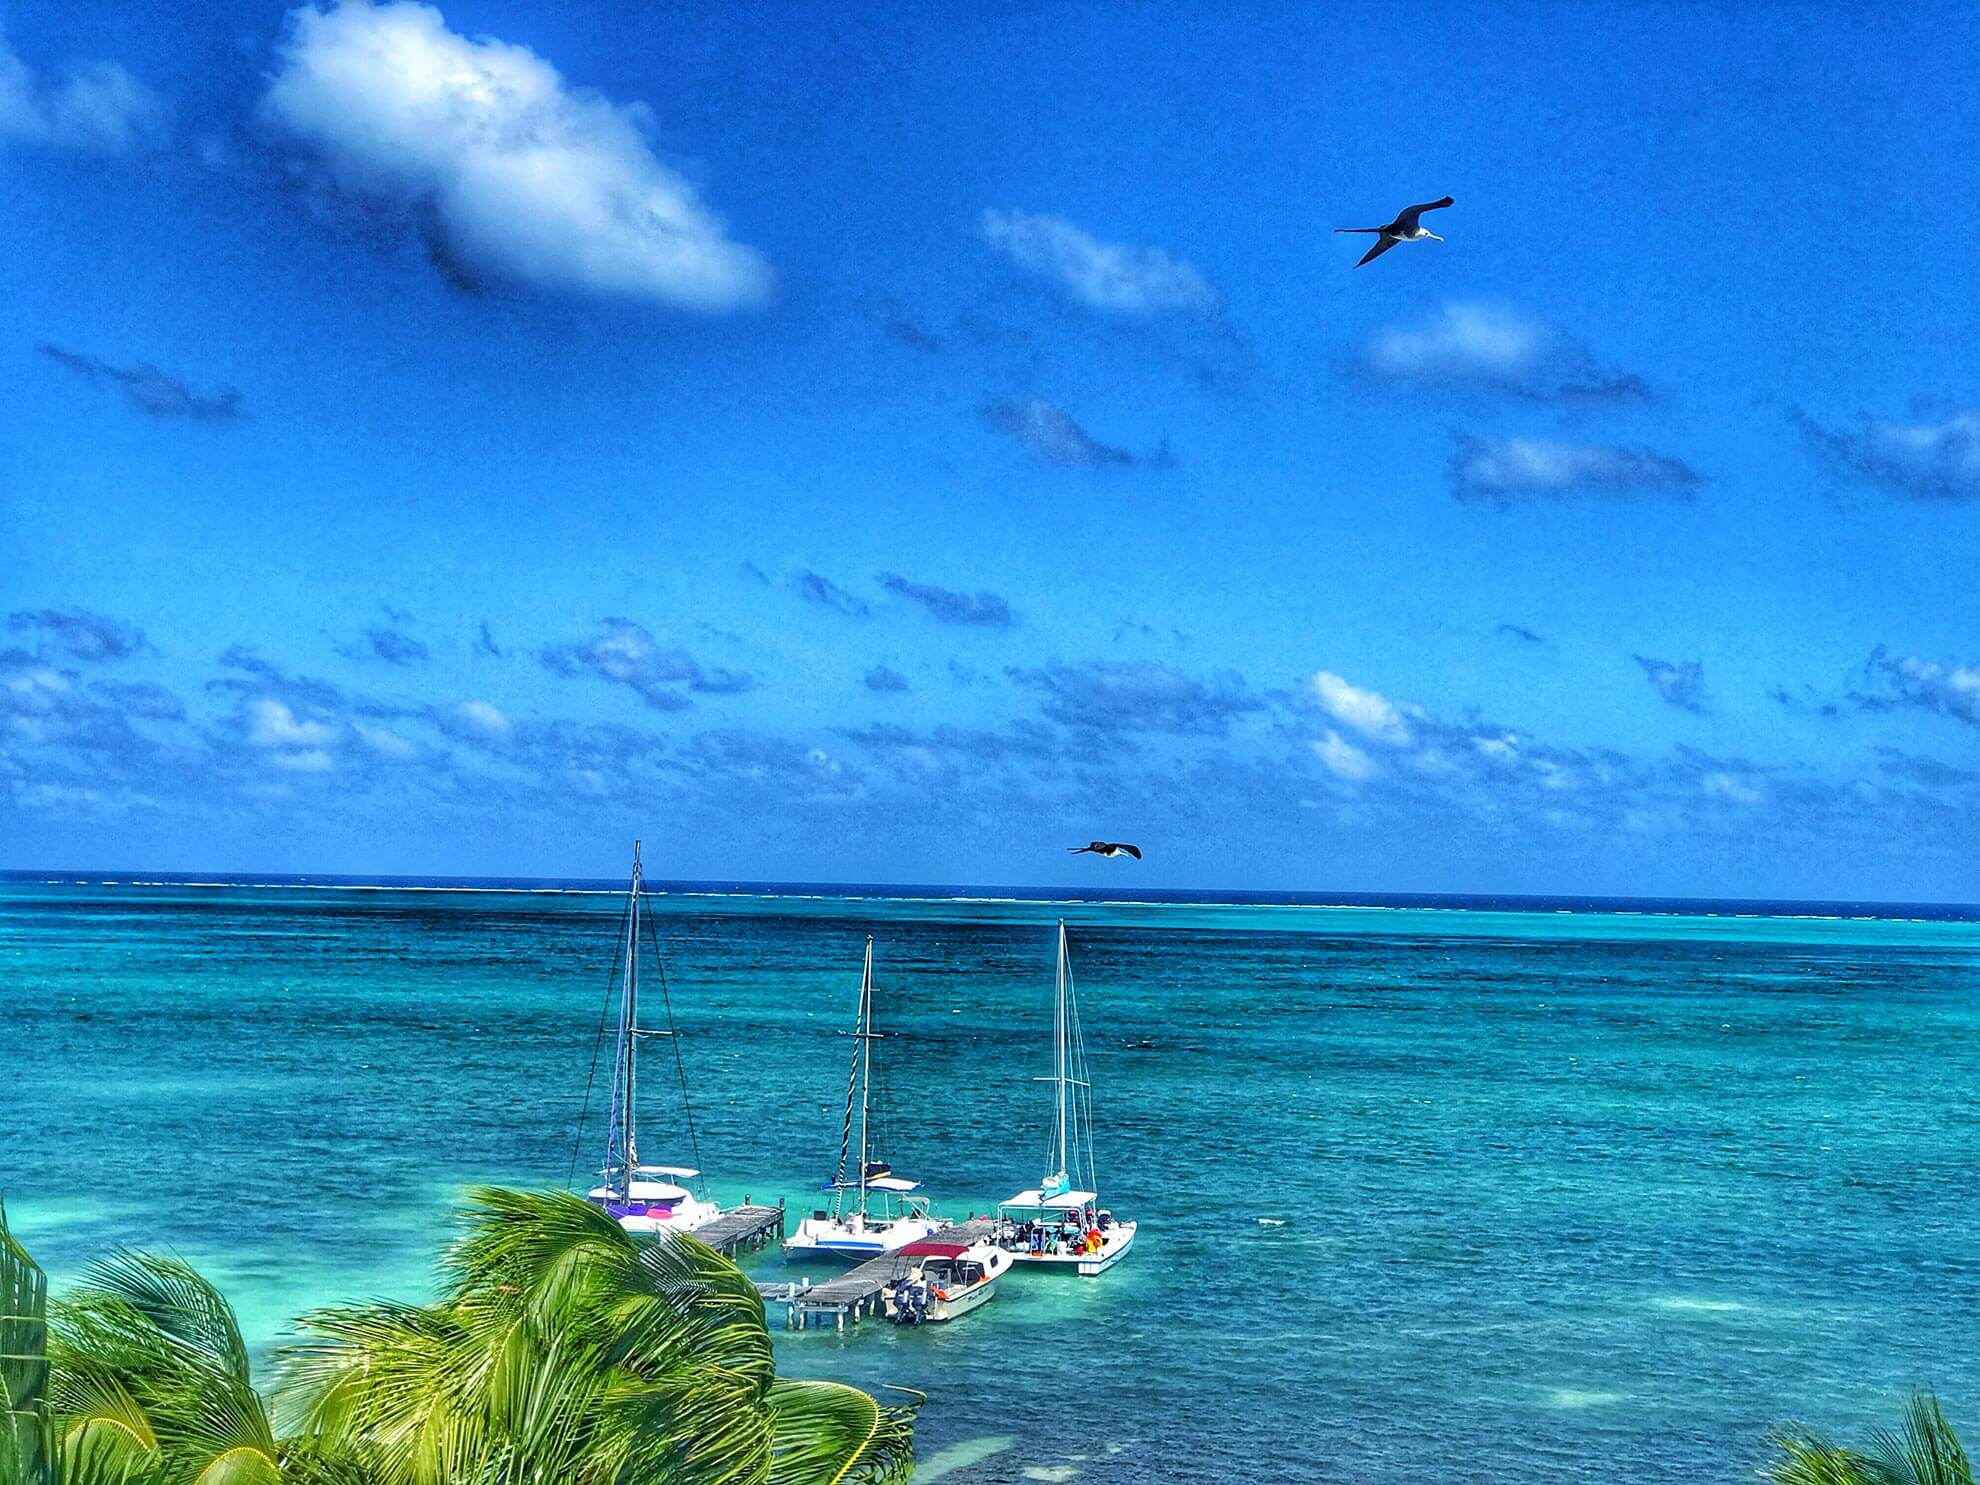 Sailboats in Belize